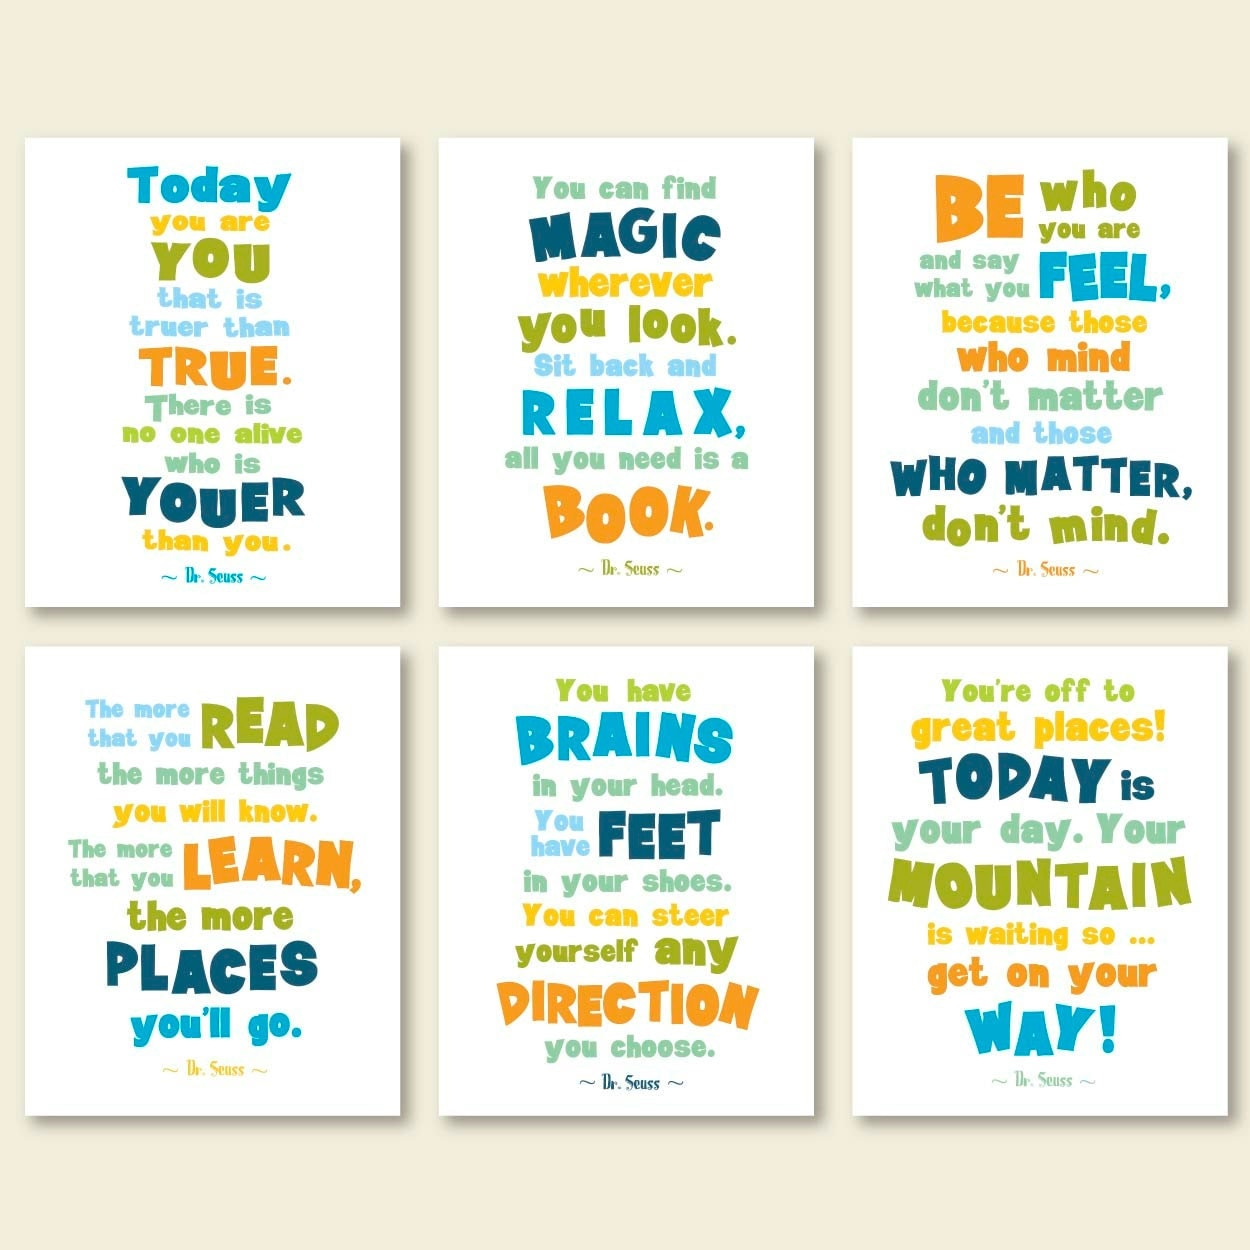 Pics for motivational posters for kids printable for Inspirational quotes for kids room